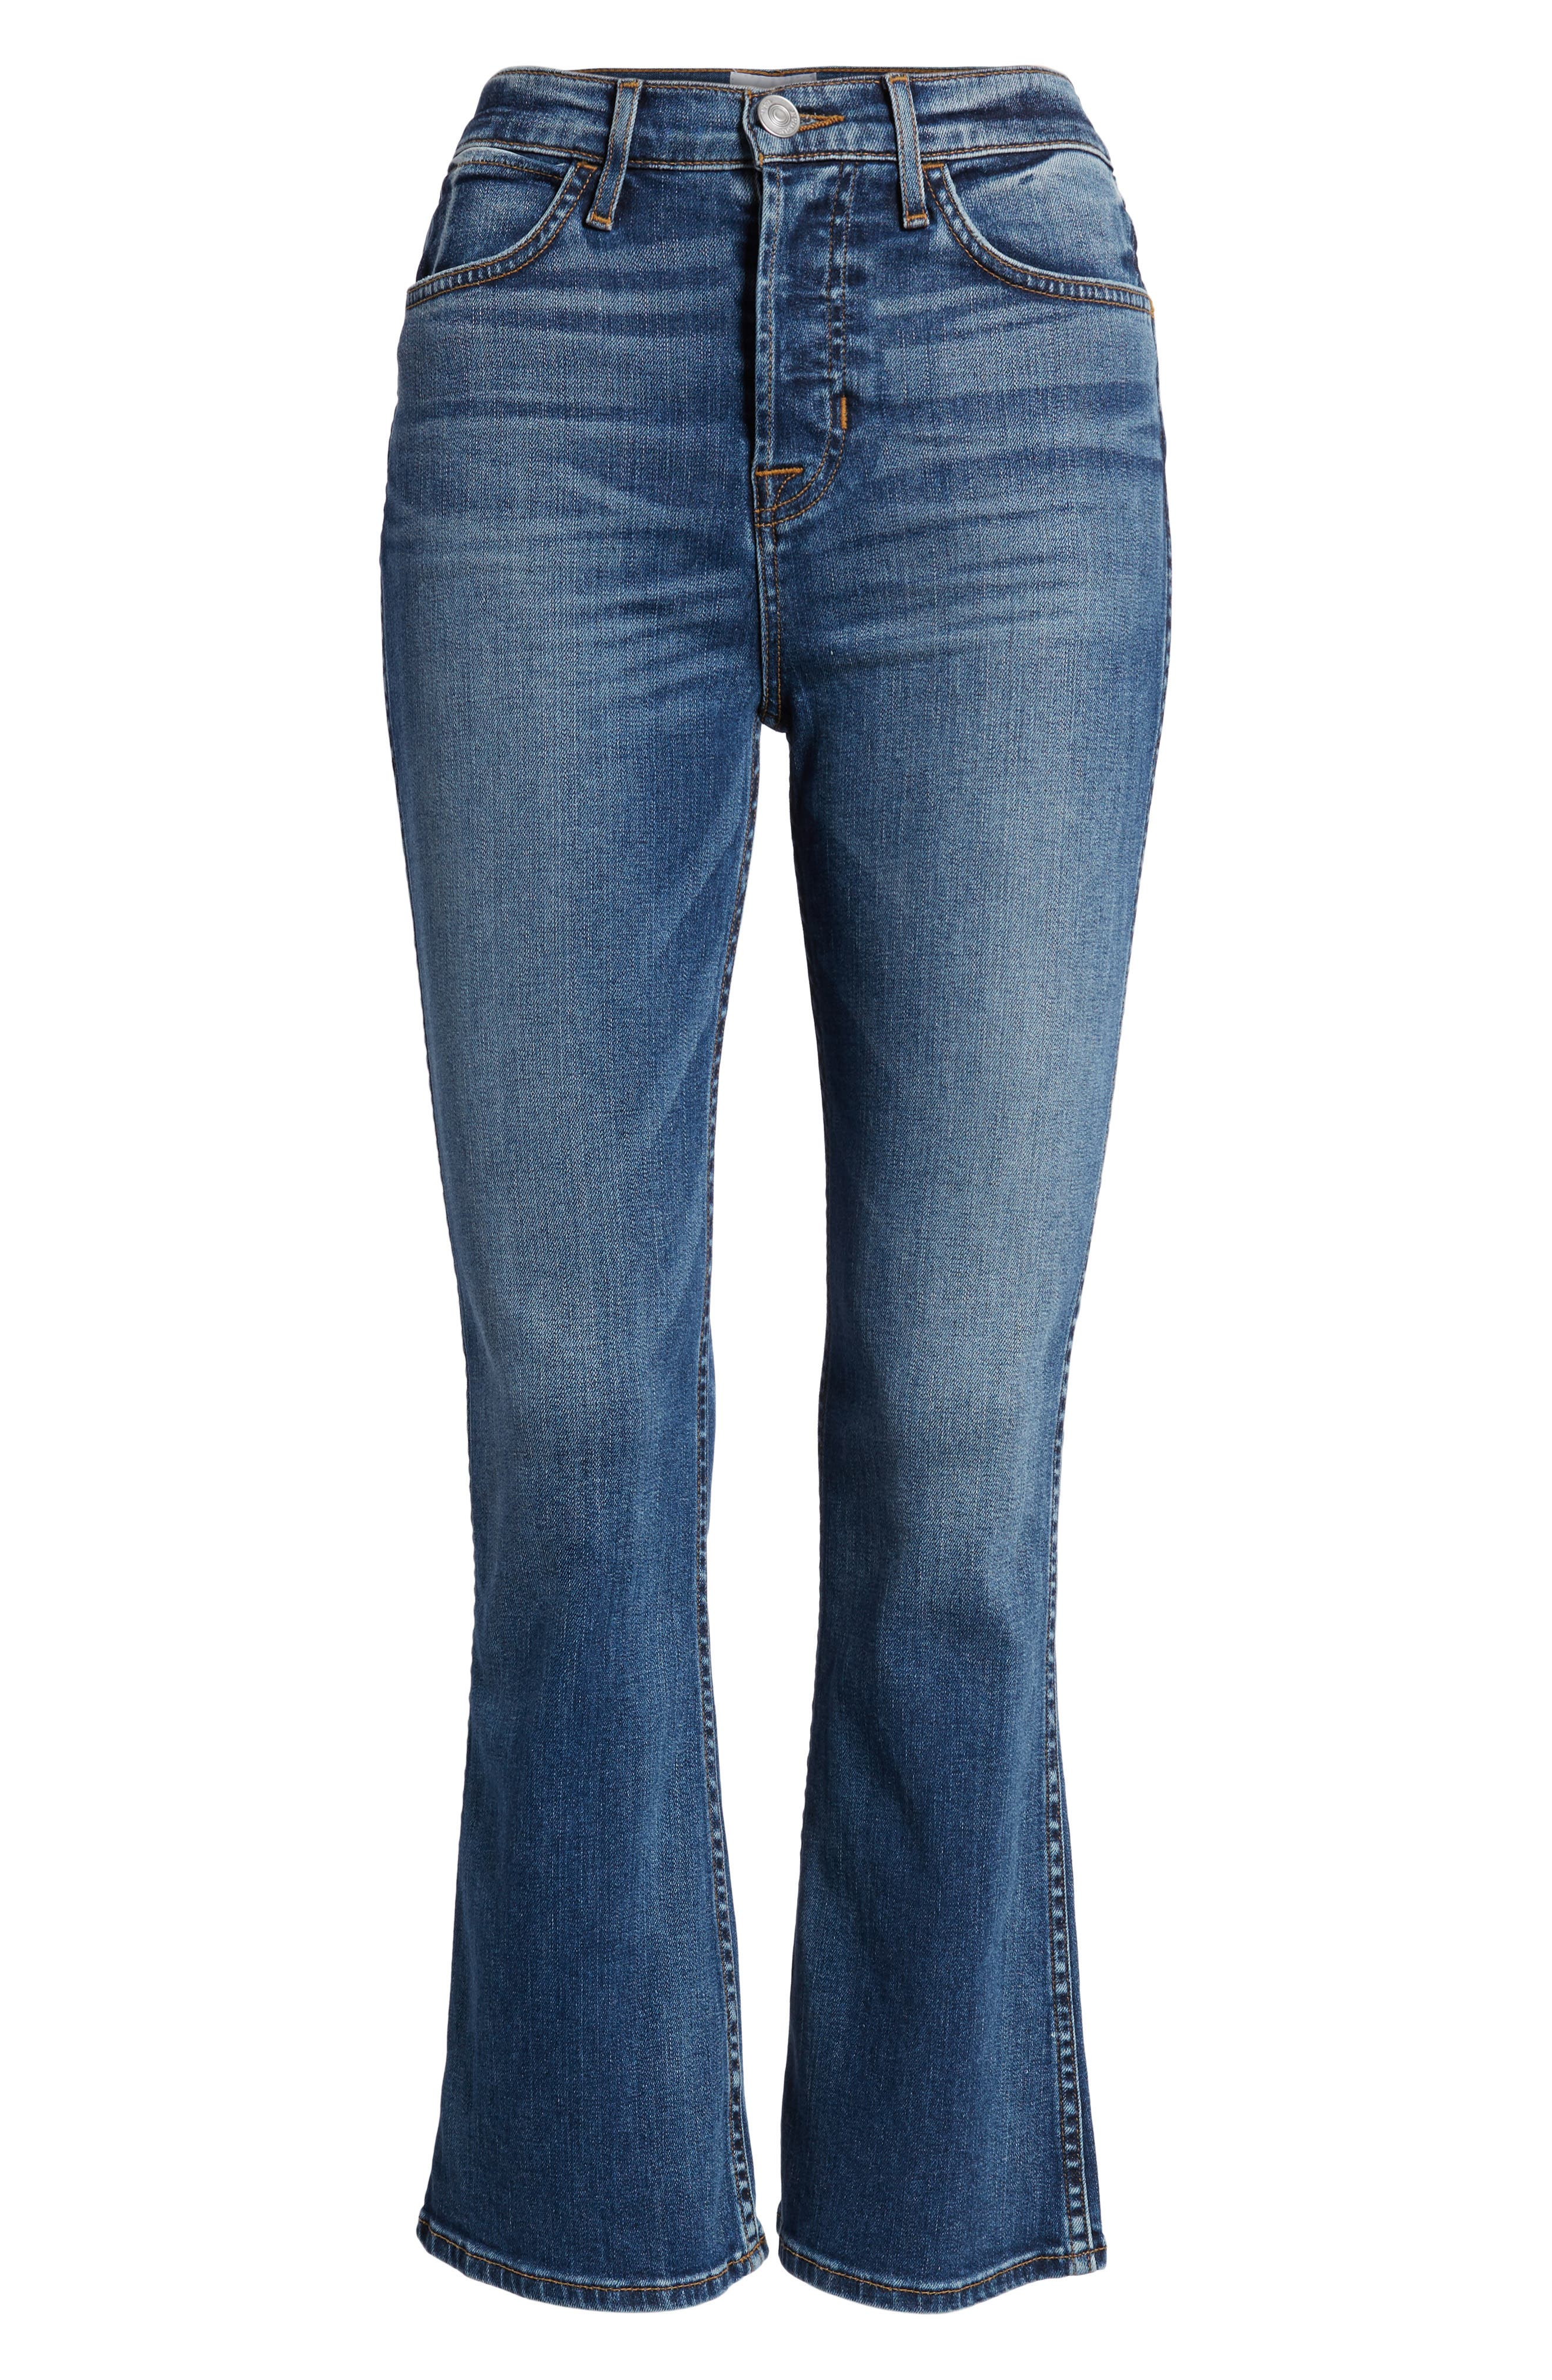 Holly High Waist Crop Flare Jeans,                             Alternate thumbnail 7, color,                             426